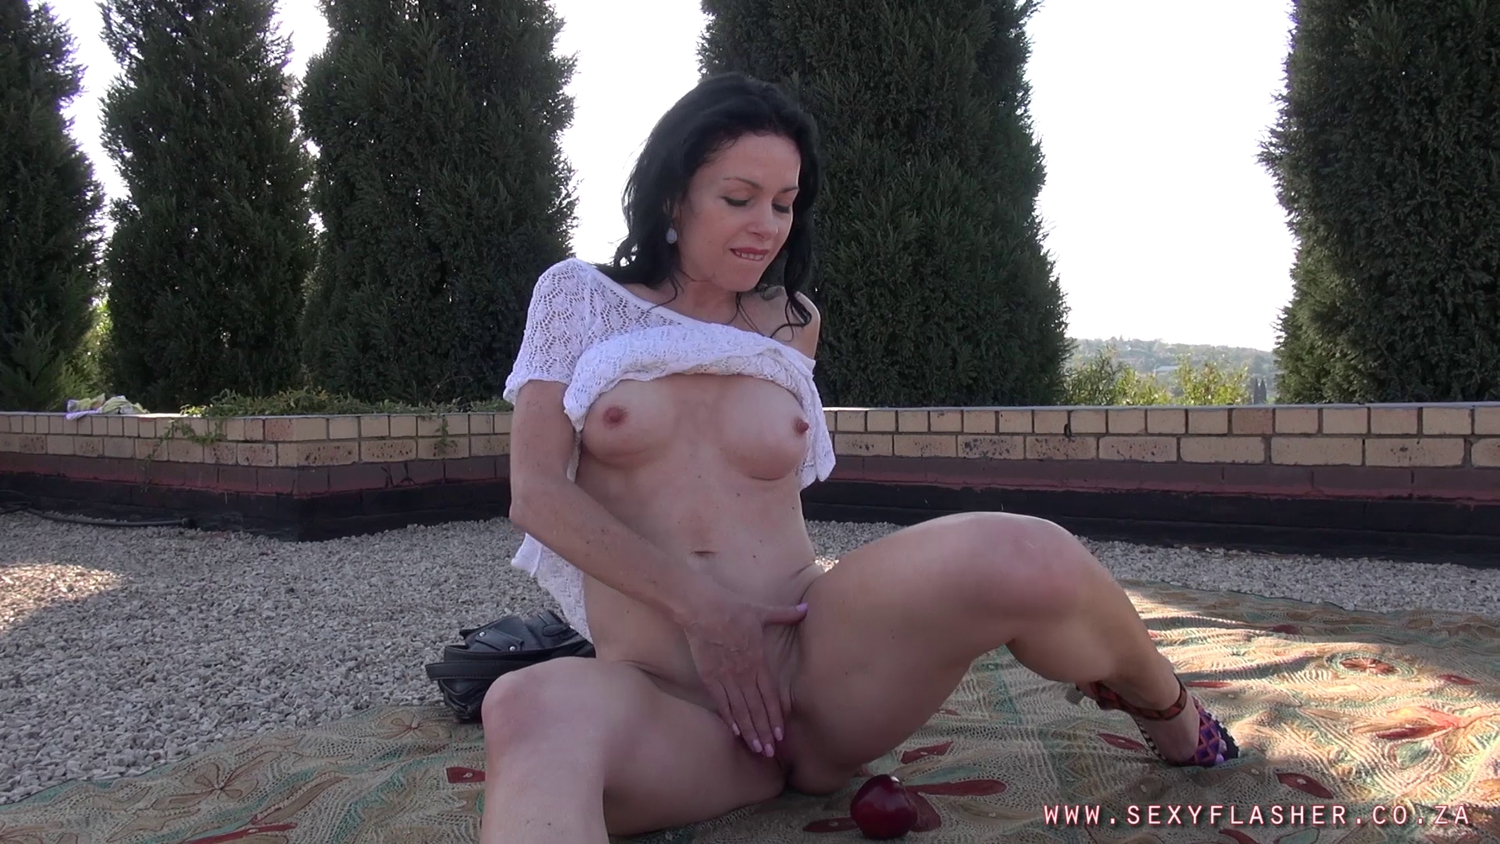 Freya - playing with benwa balls boy gay tube best